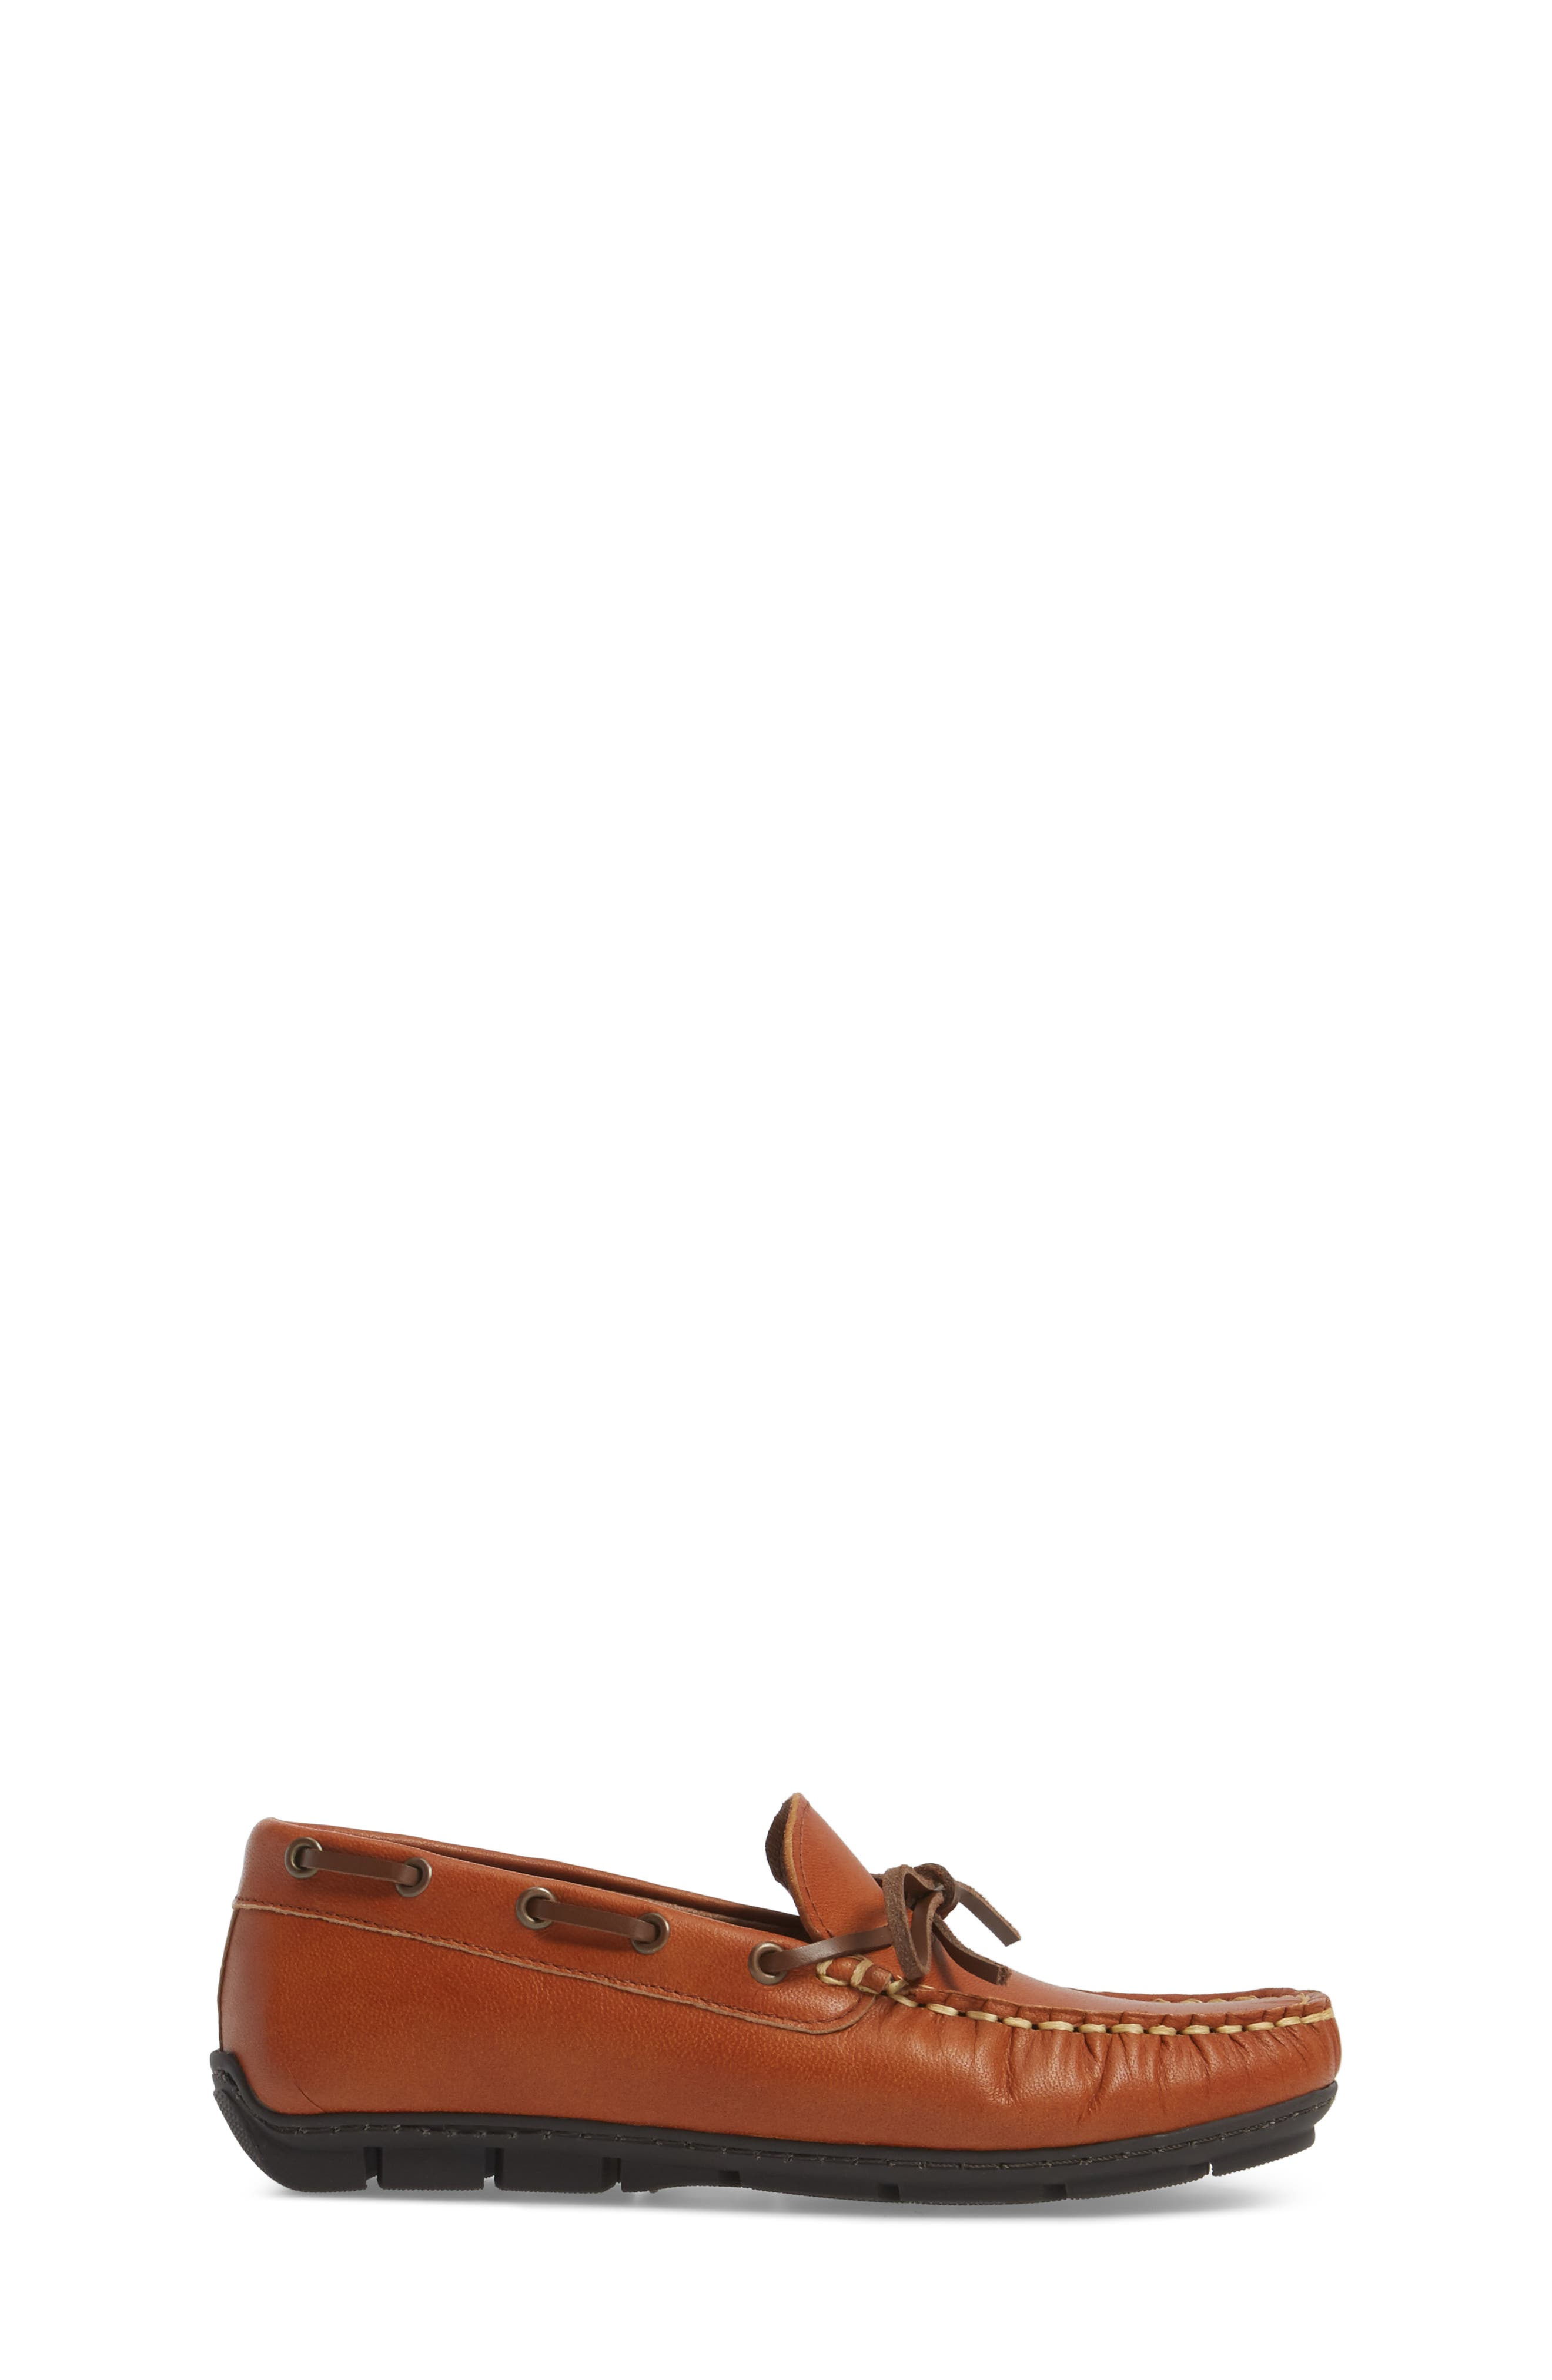 Doile Loafer,                             Alternate thumbnail 3, color,                             NATURALE LEATHER